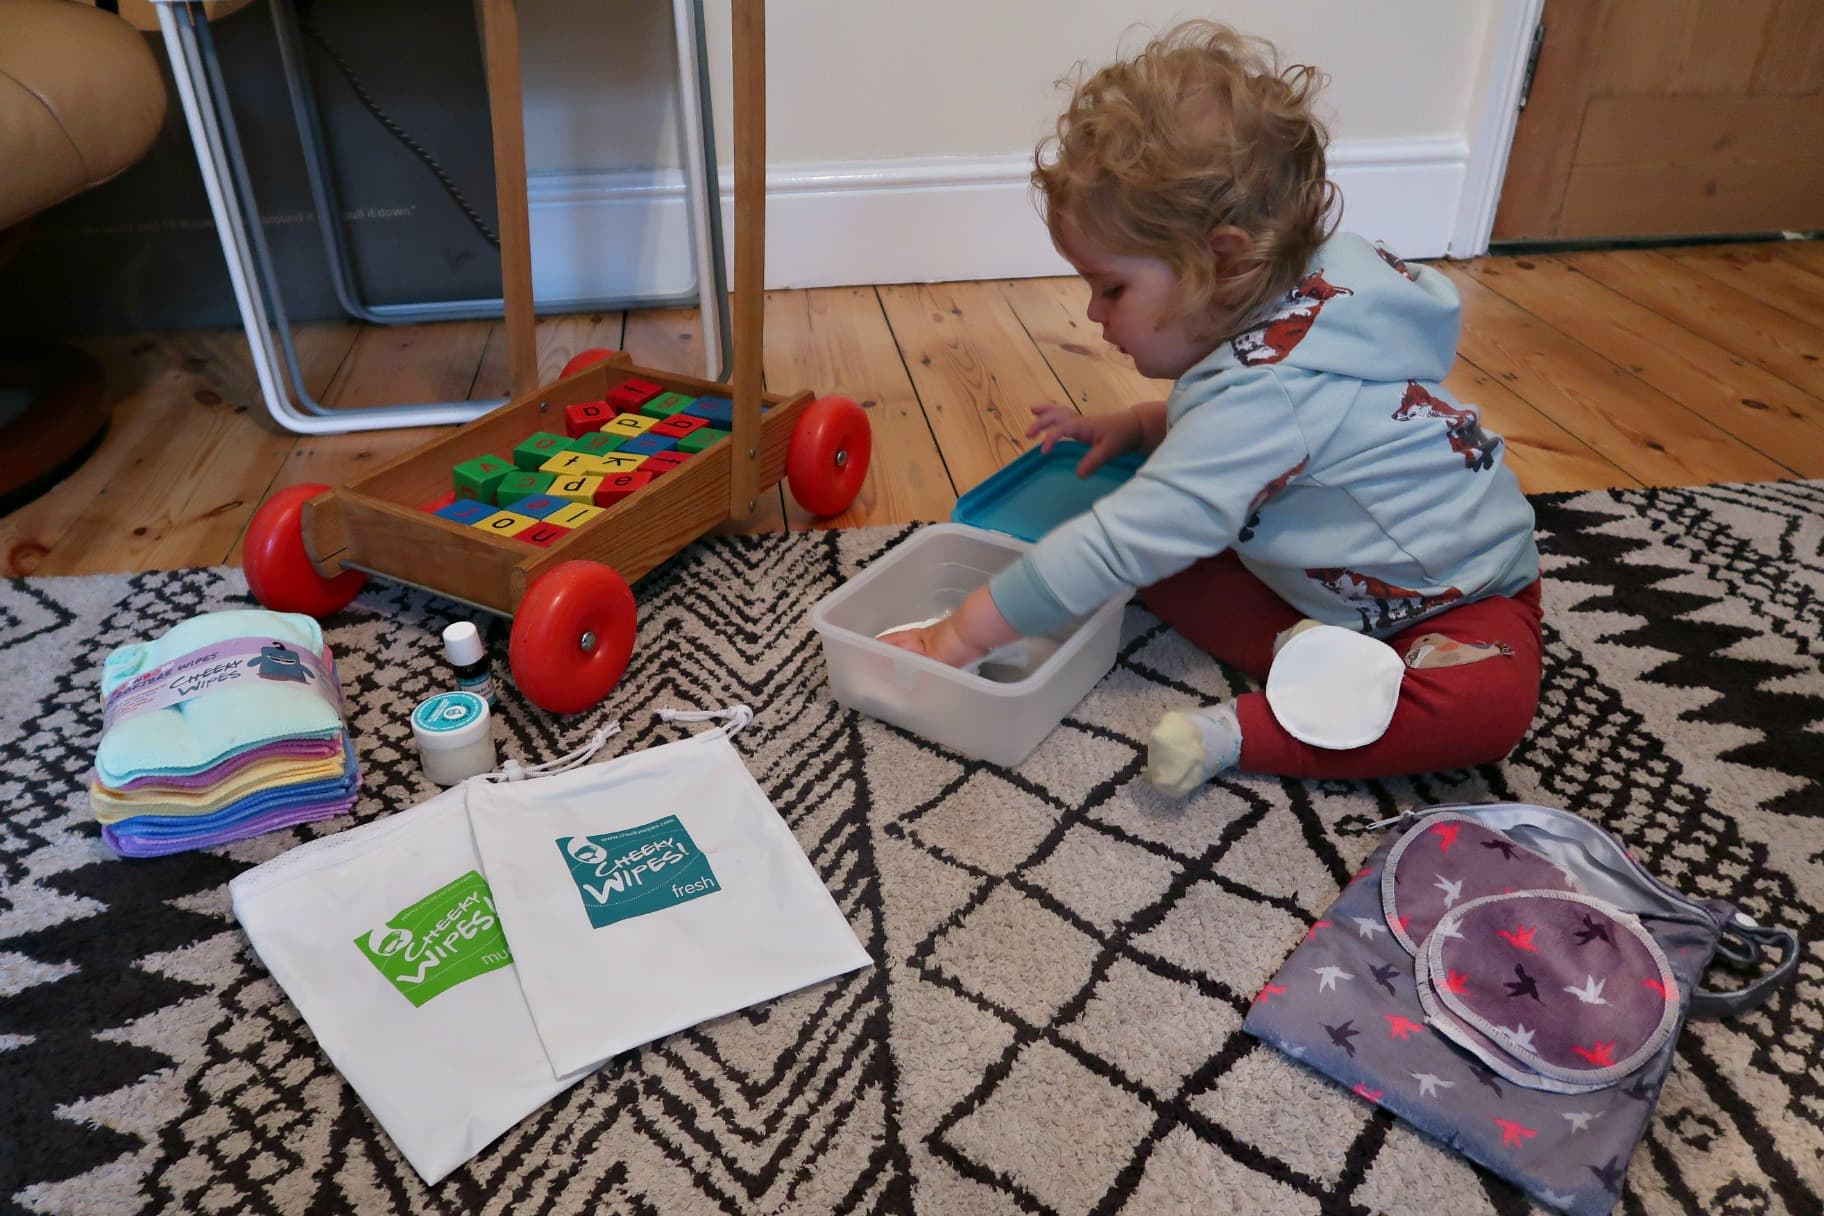 environmentally friendly living baby playing with cheeky wipes